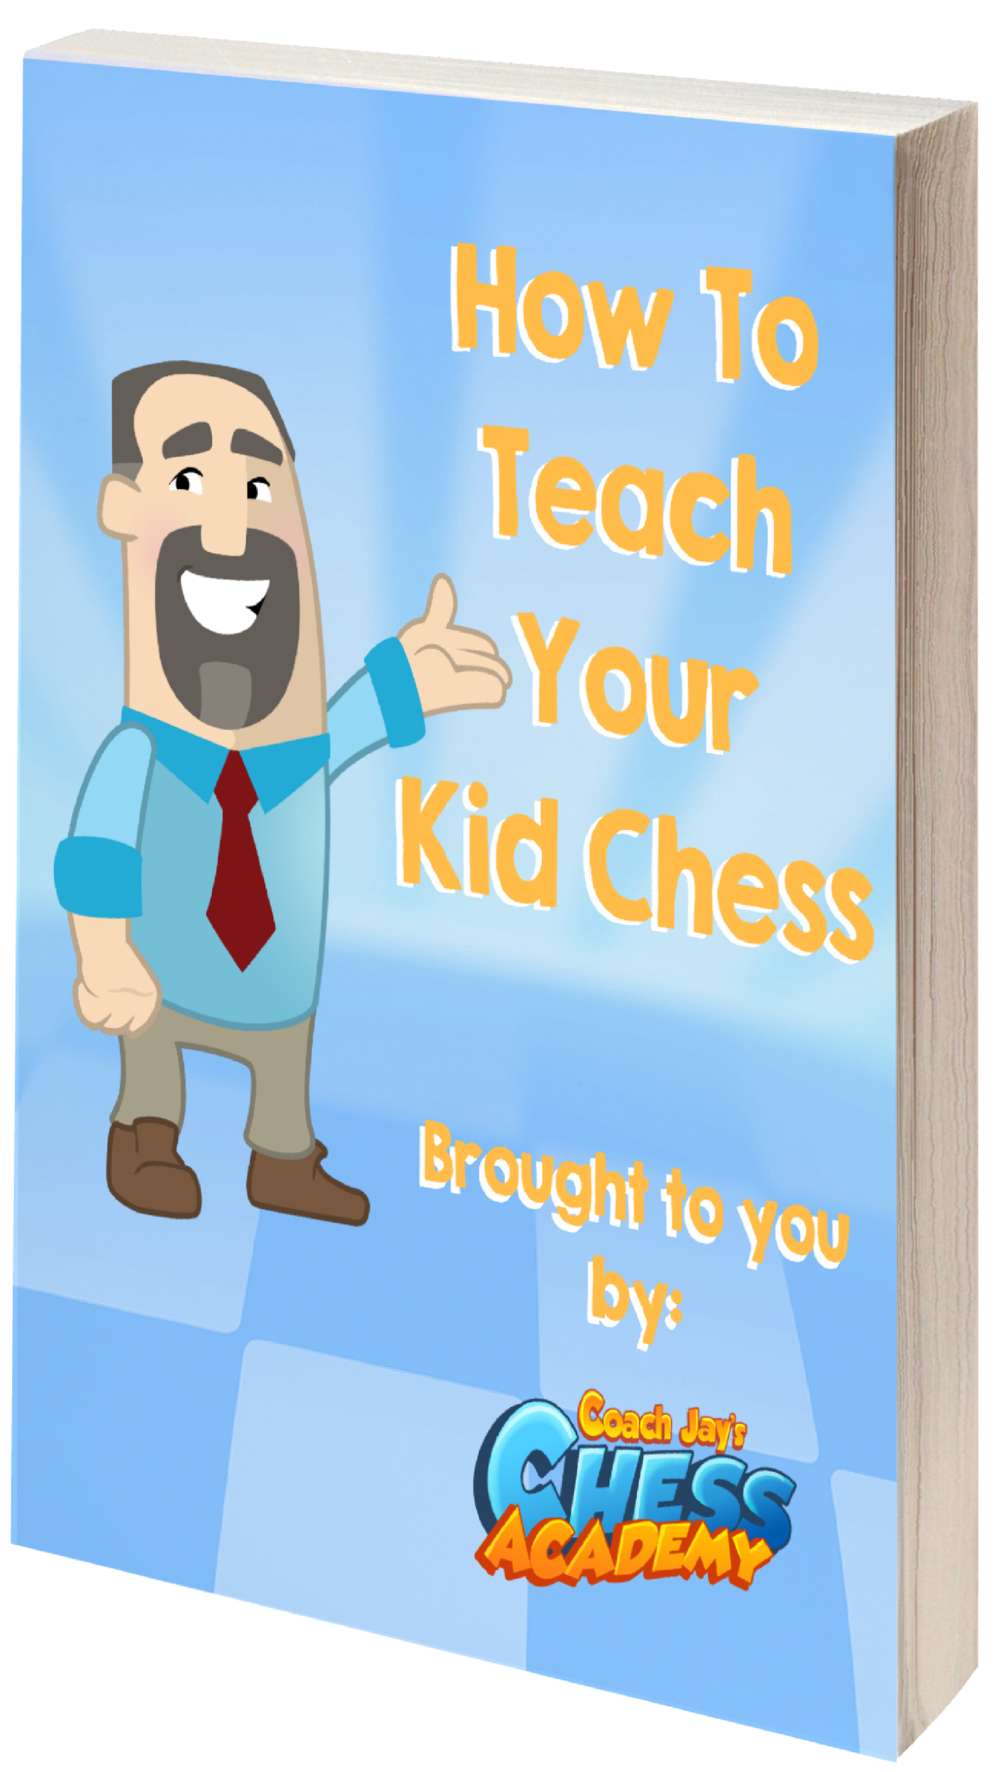 The free e-book that'll get you started!